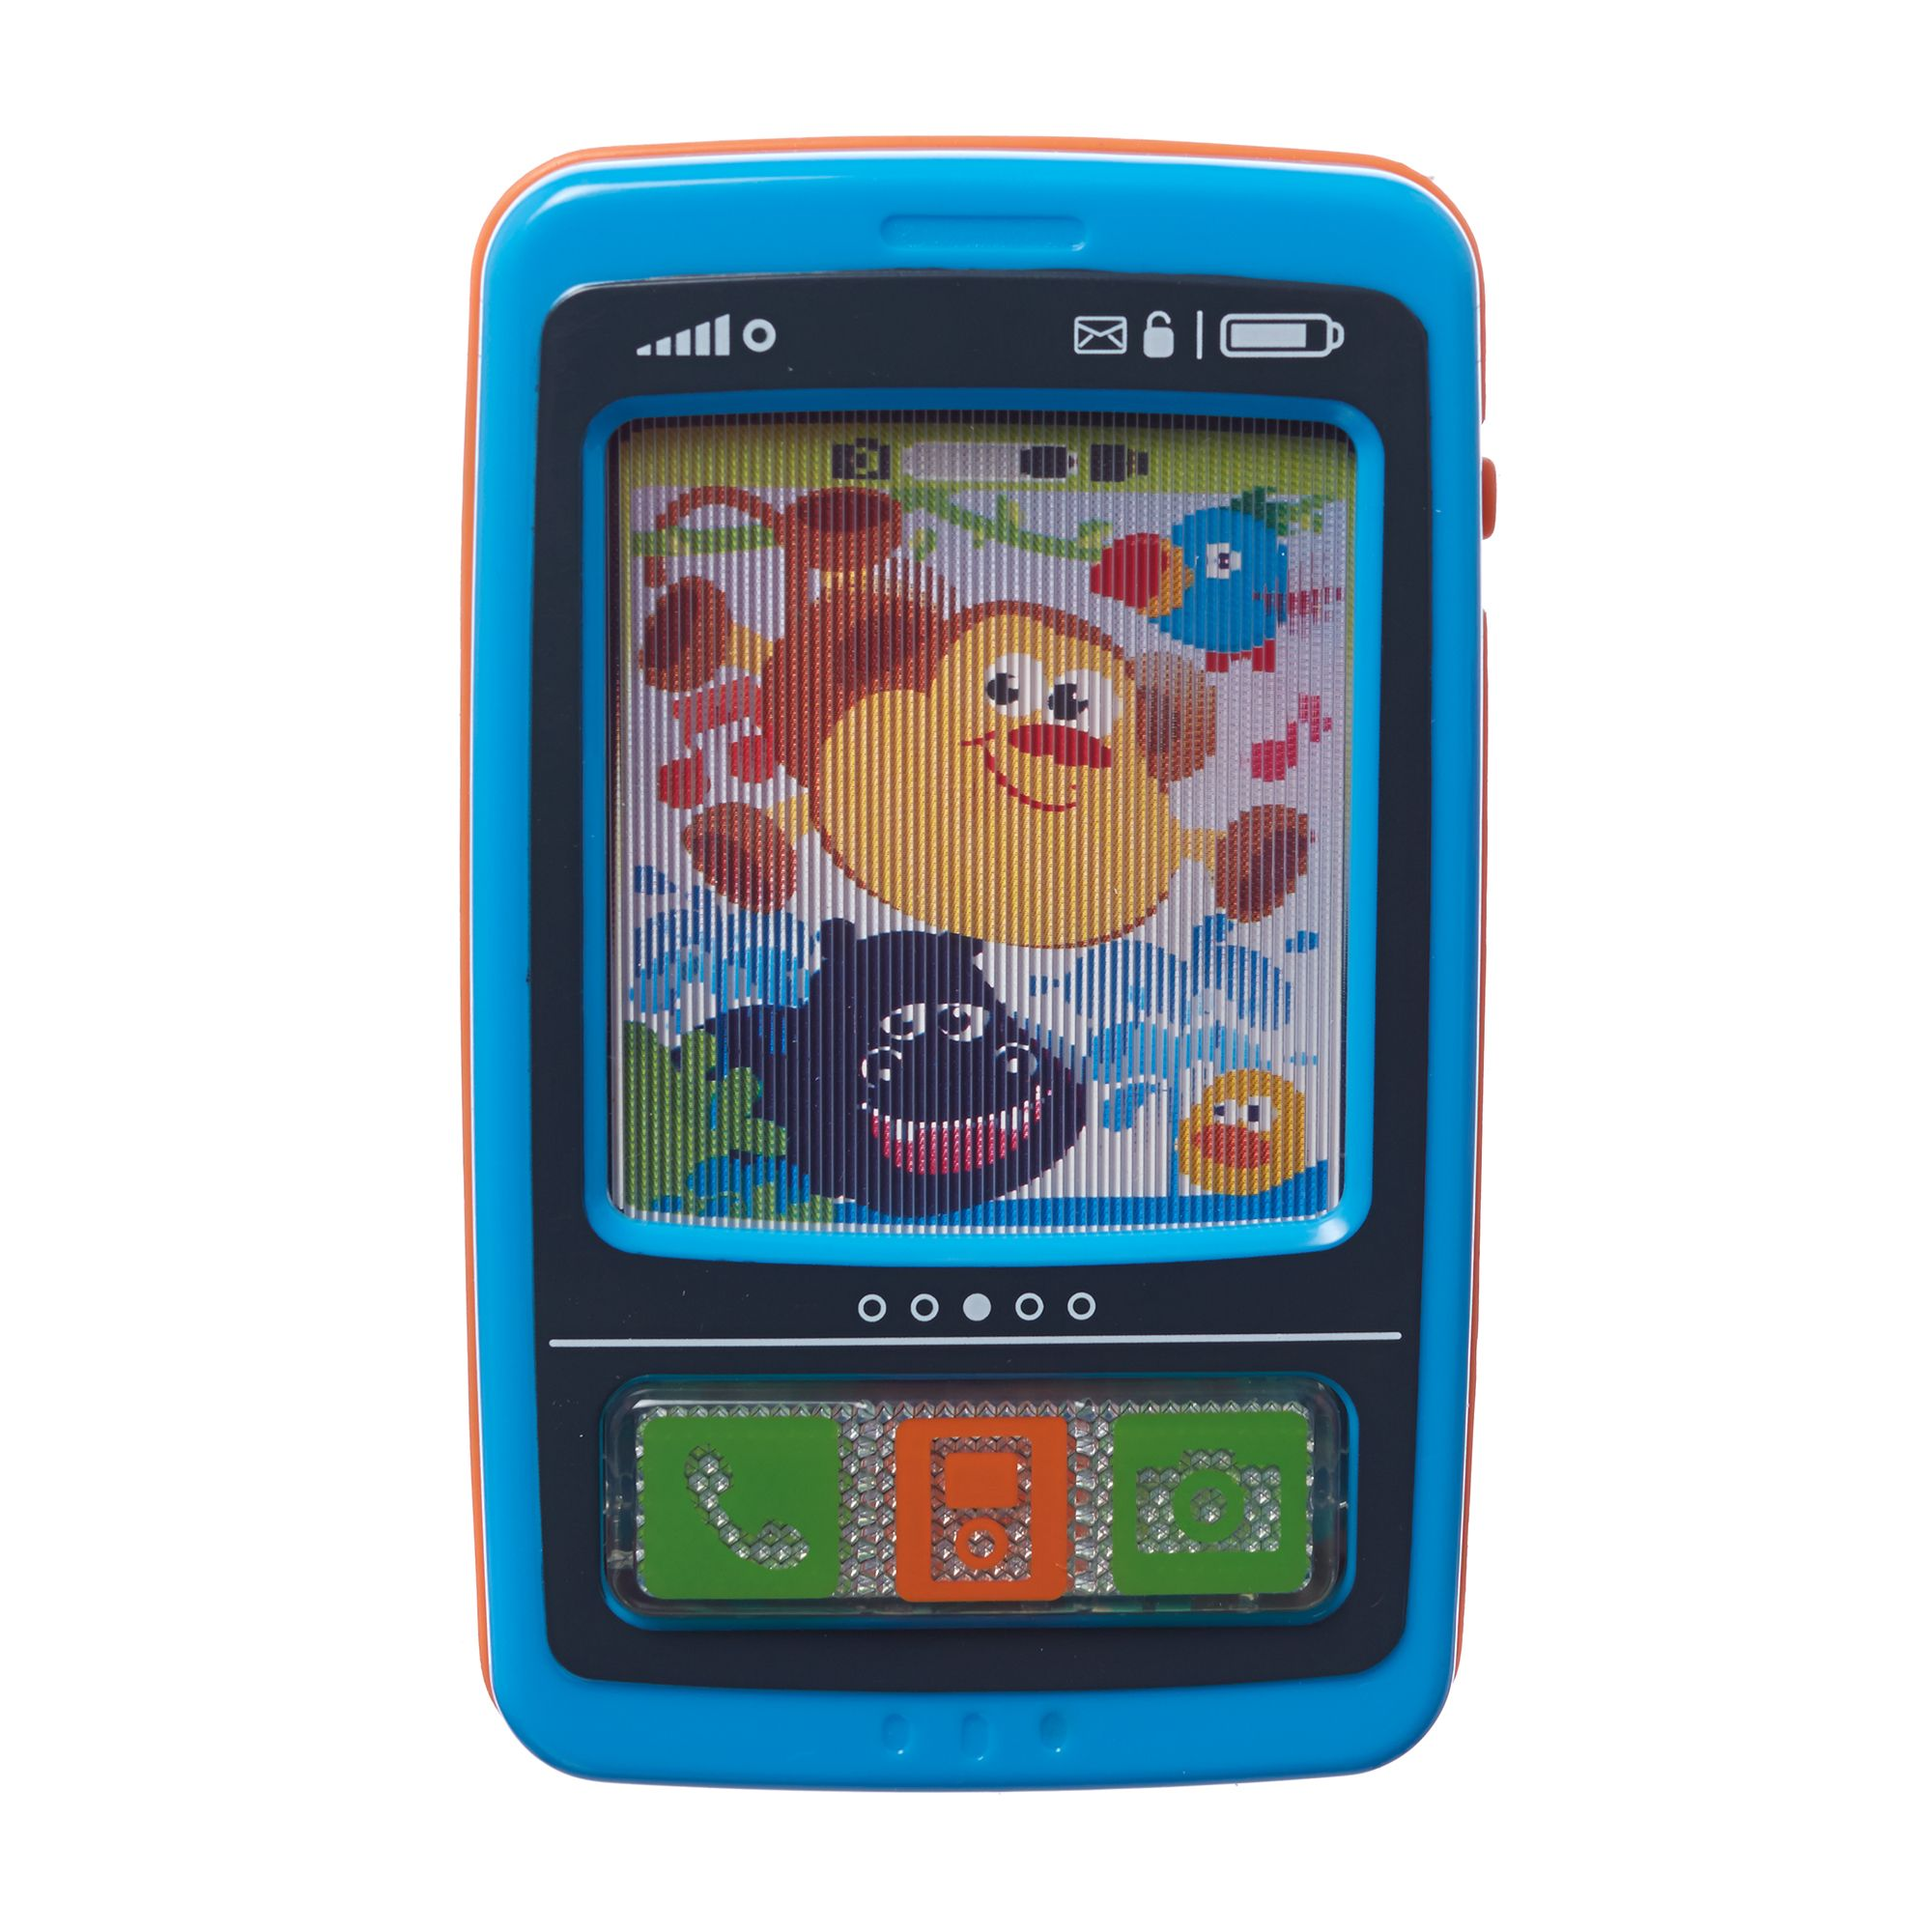 Hamleys Baby Smart Phone